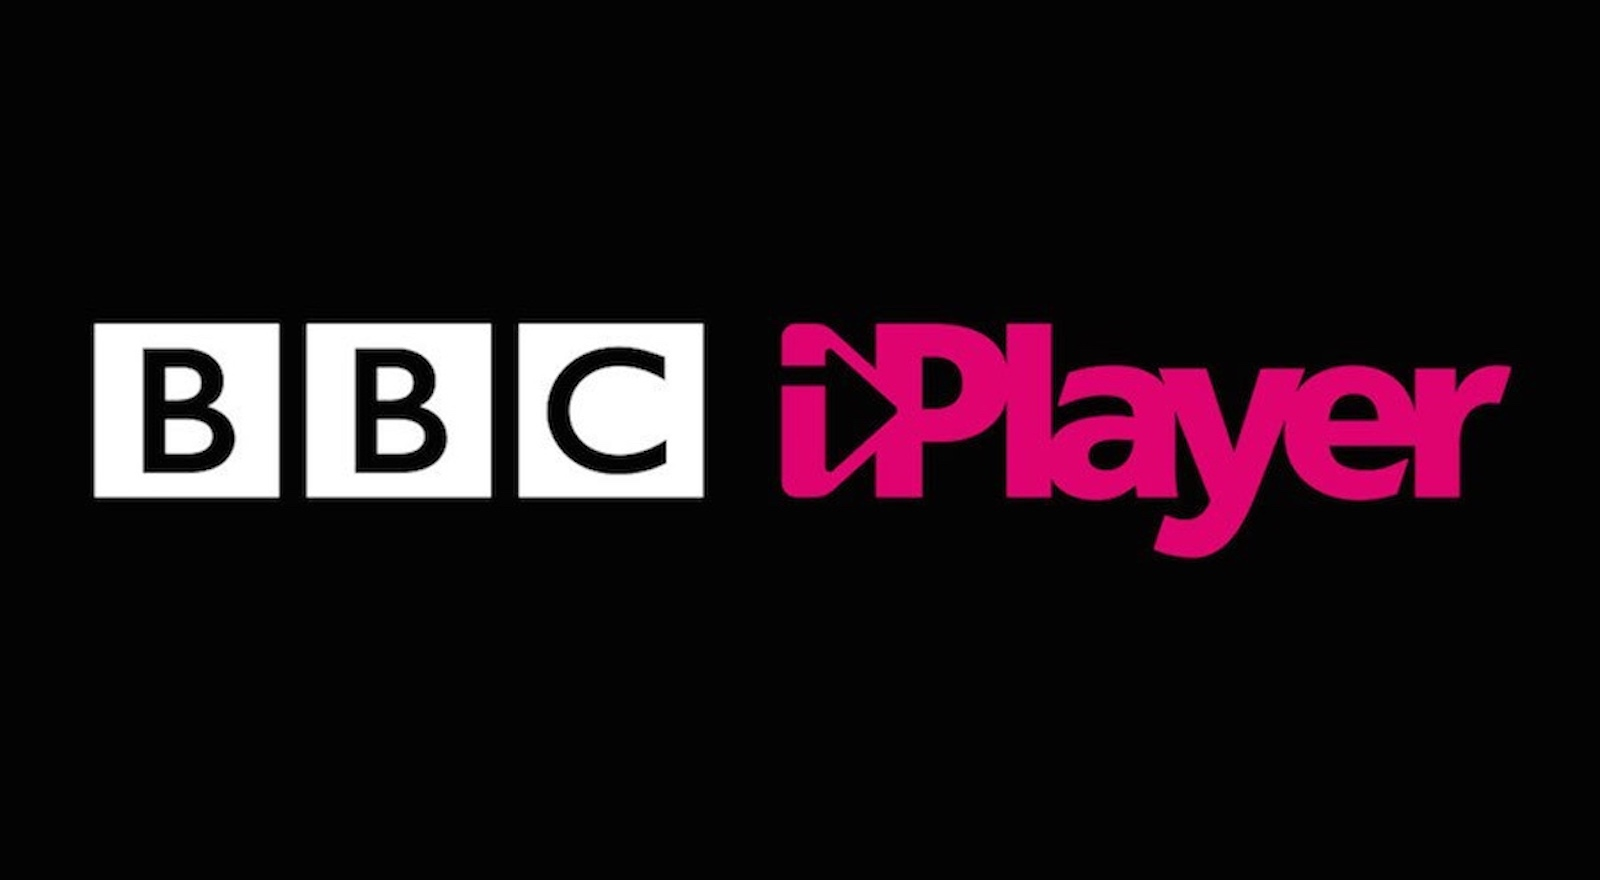 Box-set gambit propels iPlayer to record weekly ratings